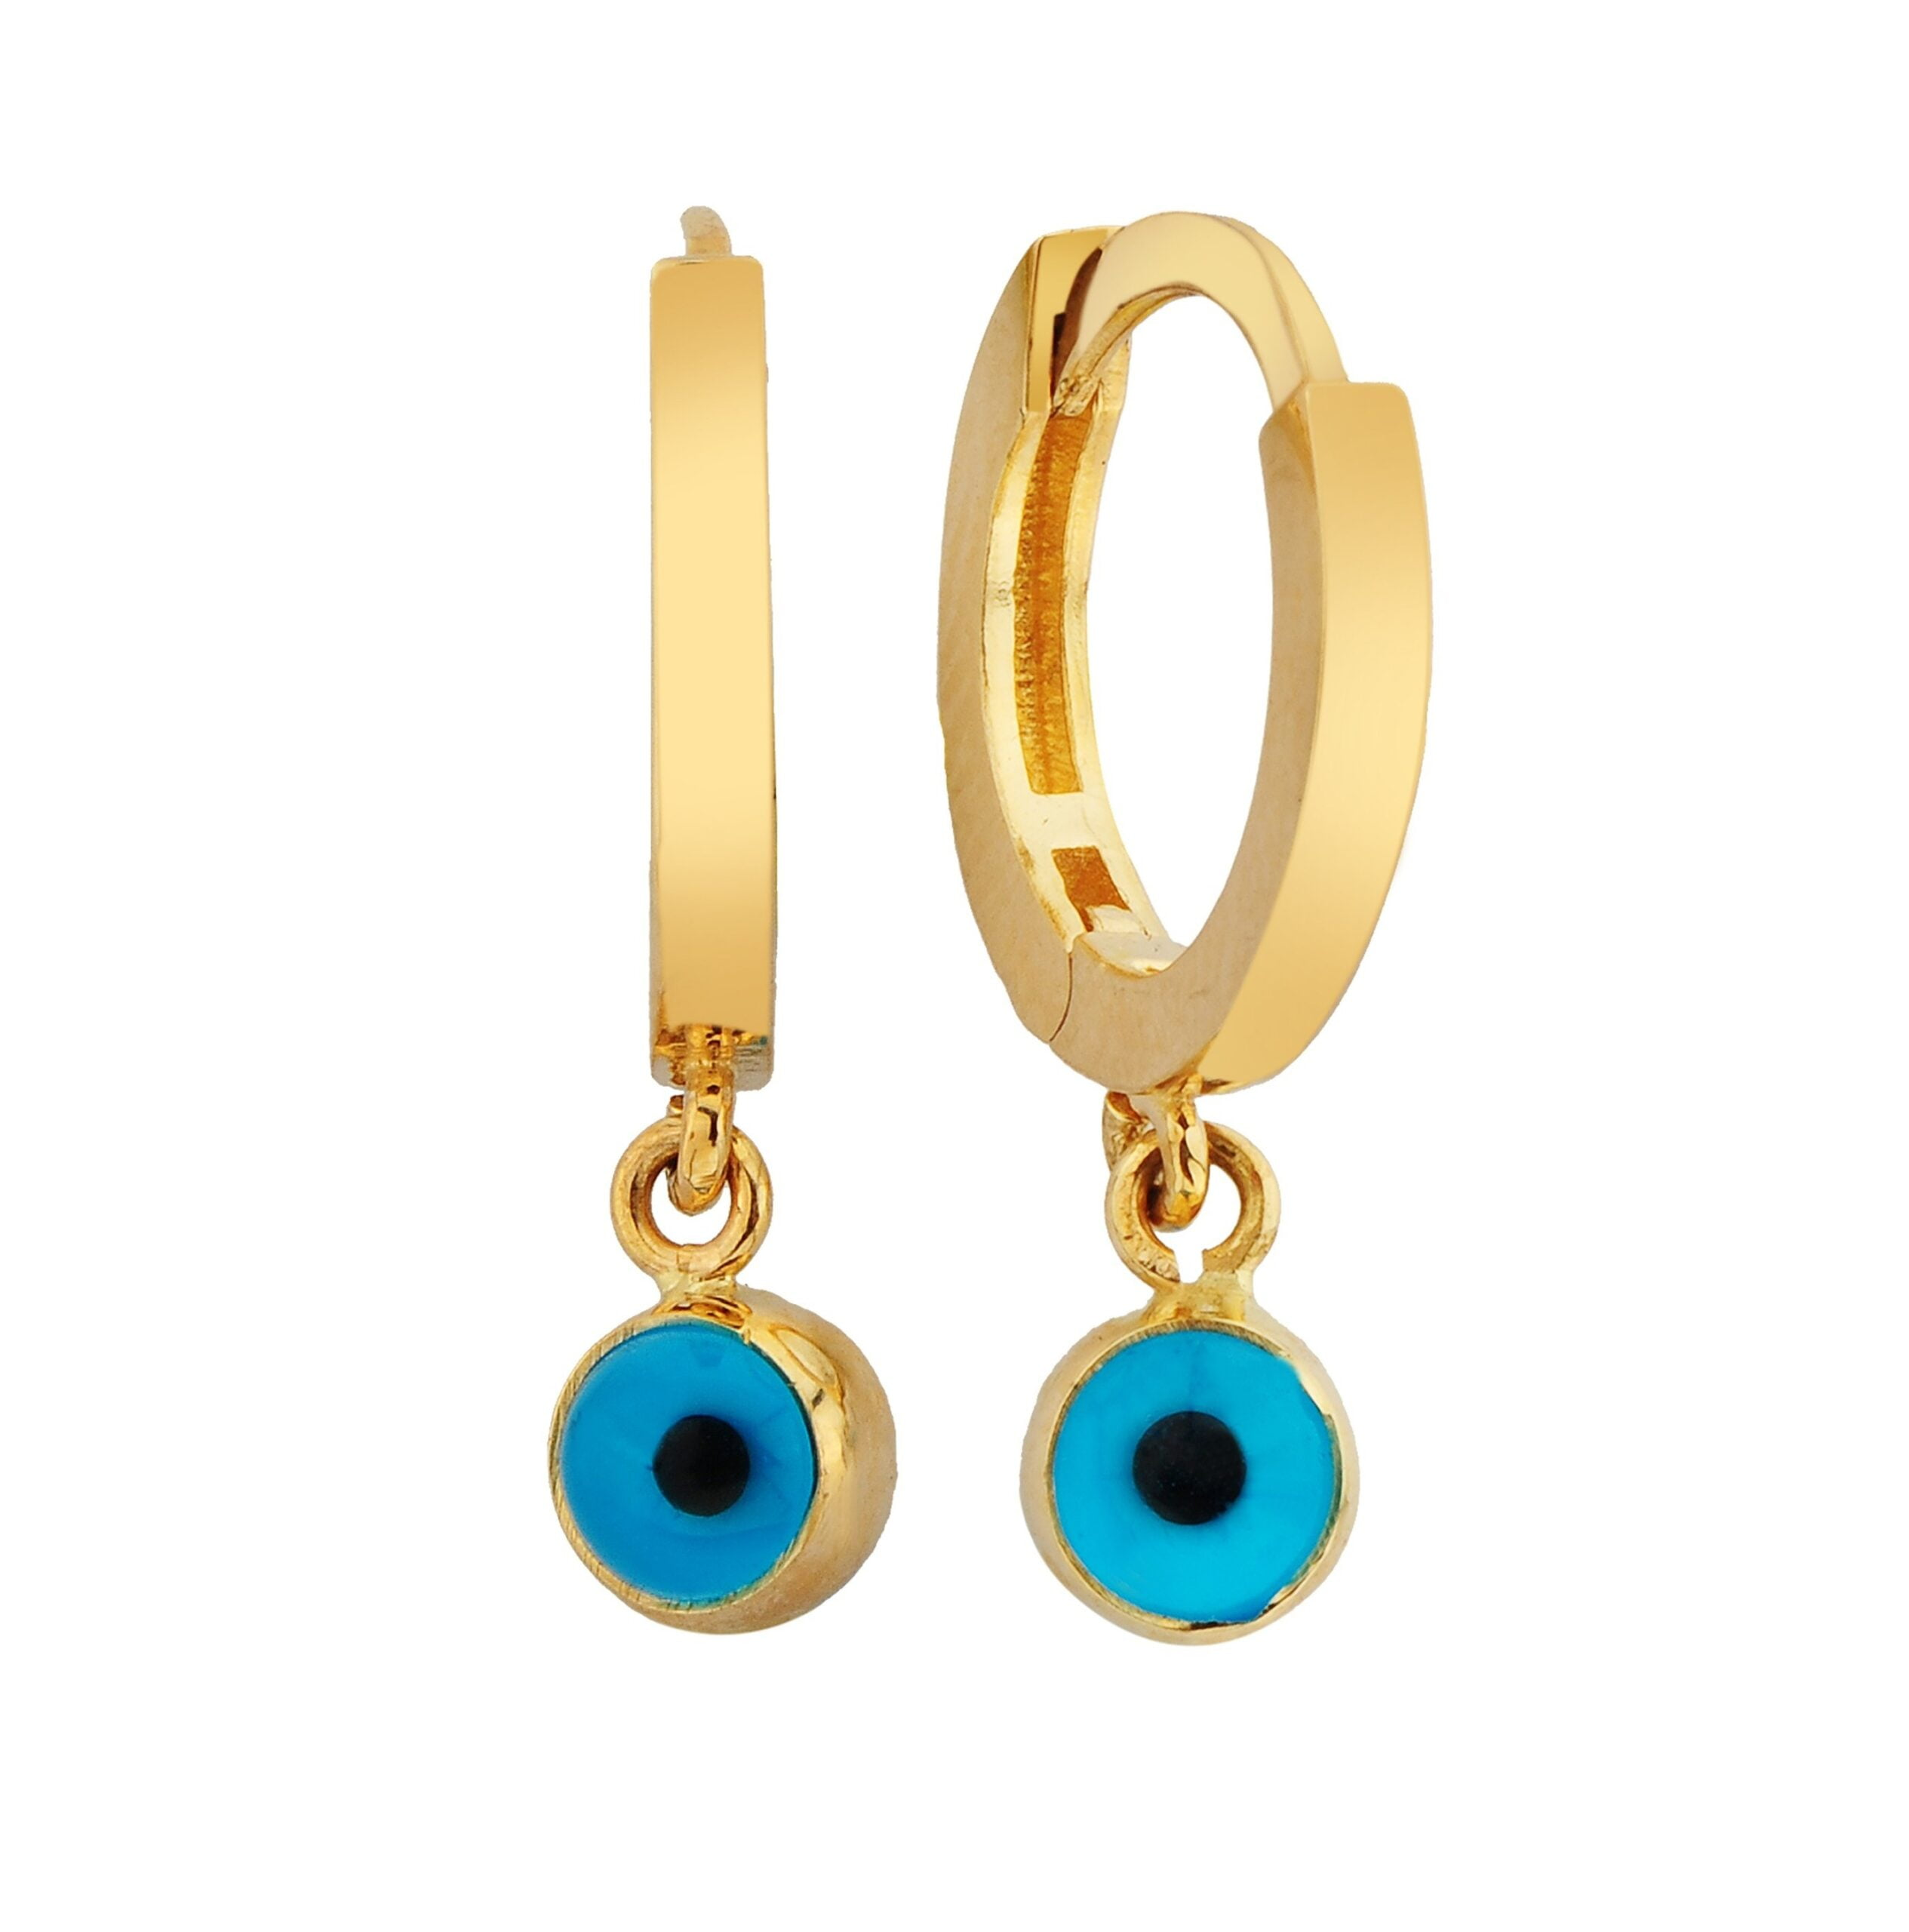 Lucky Eye Turkish Evil Eye Drop Earrings | Charms Hanging Dangle Earrings for Women | 14k Real Solid Gold Jewelry Gift Christmas Mother's Day Birthday Gift handmade